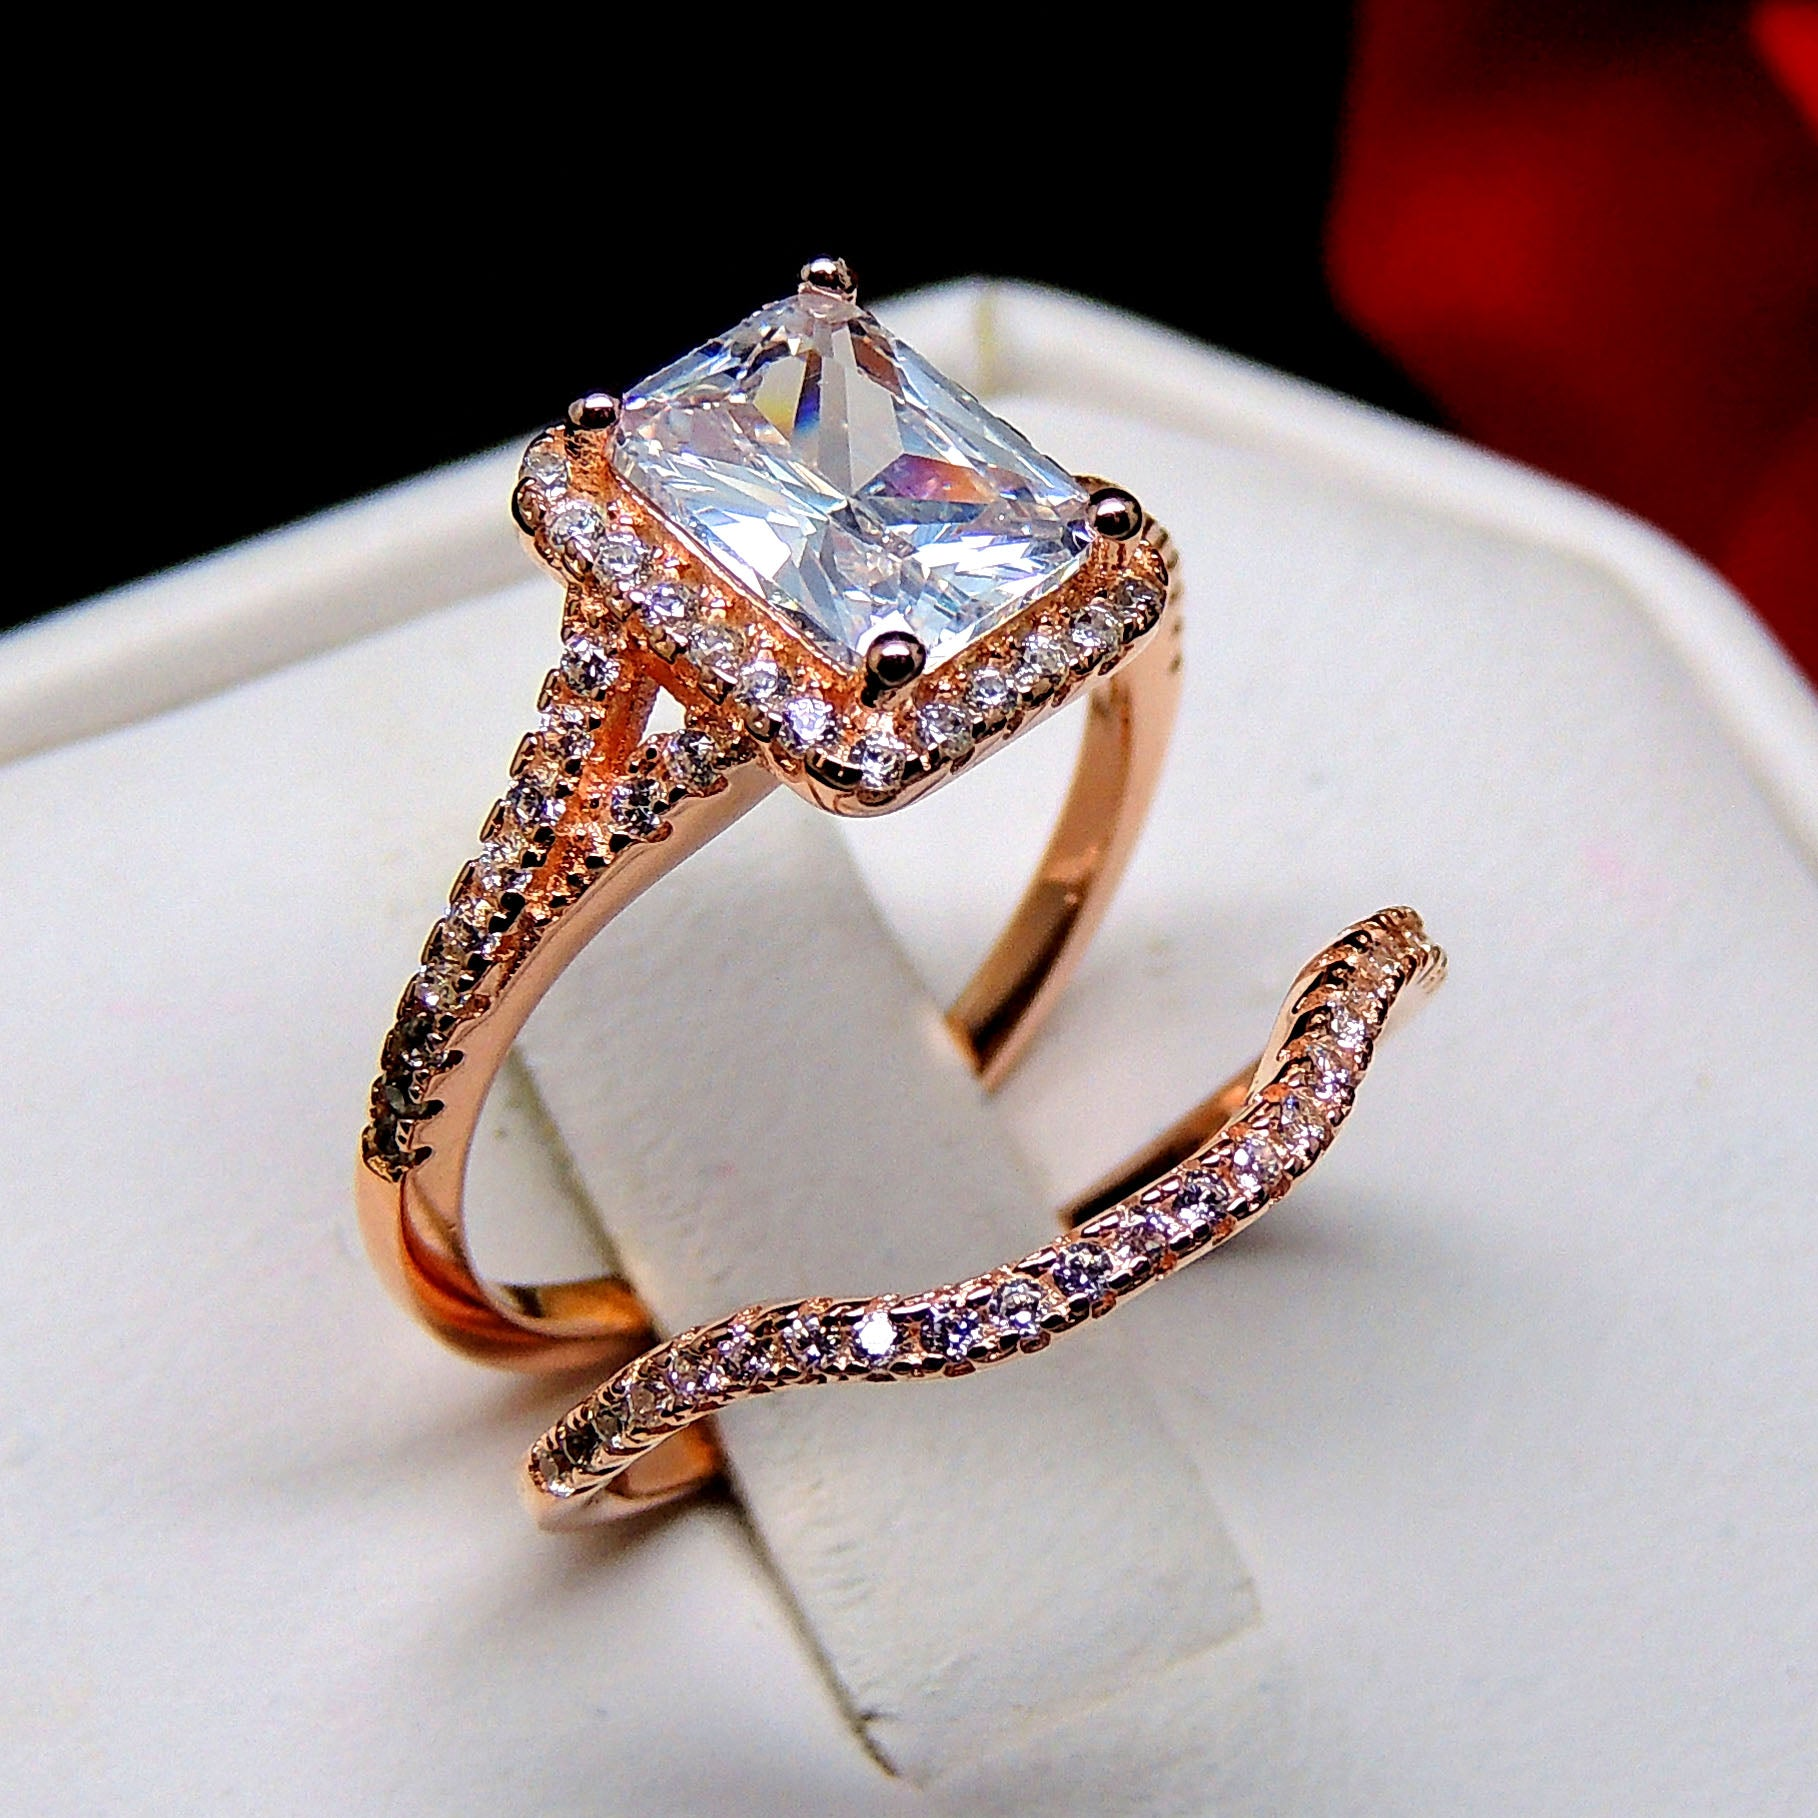 Nancy Rose Gold Over Sterling Engagement and Wedding Band Ring Set - Ginger Lyne Collection